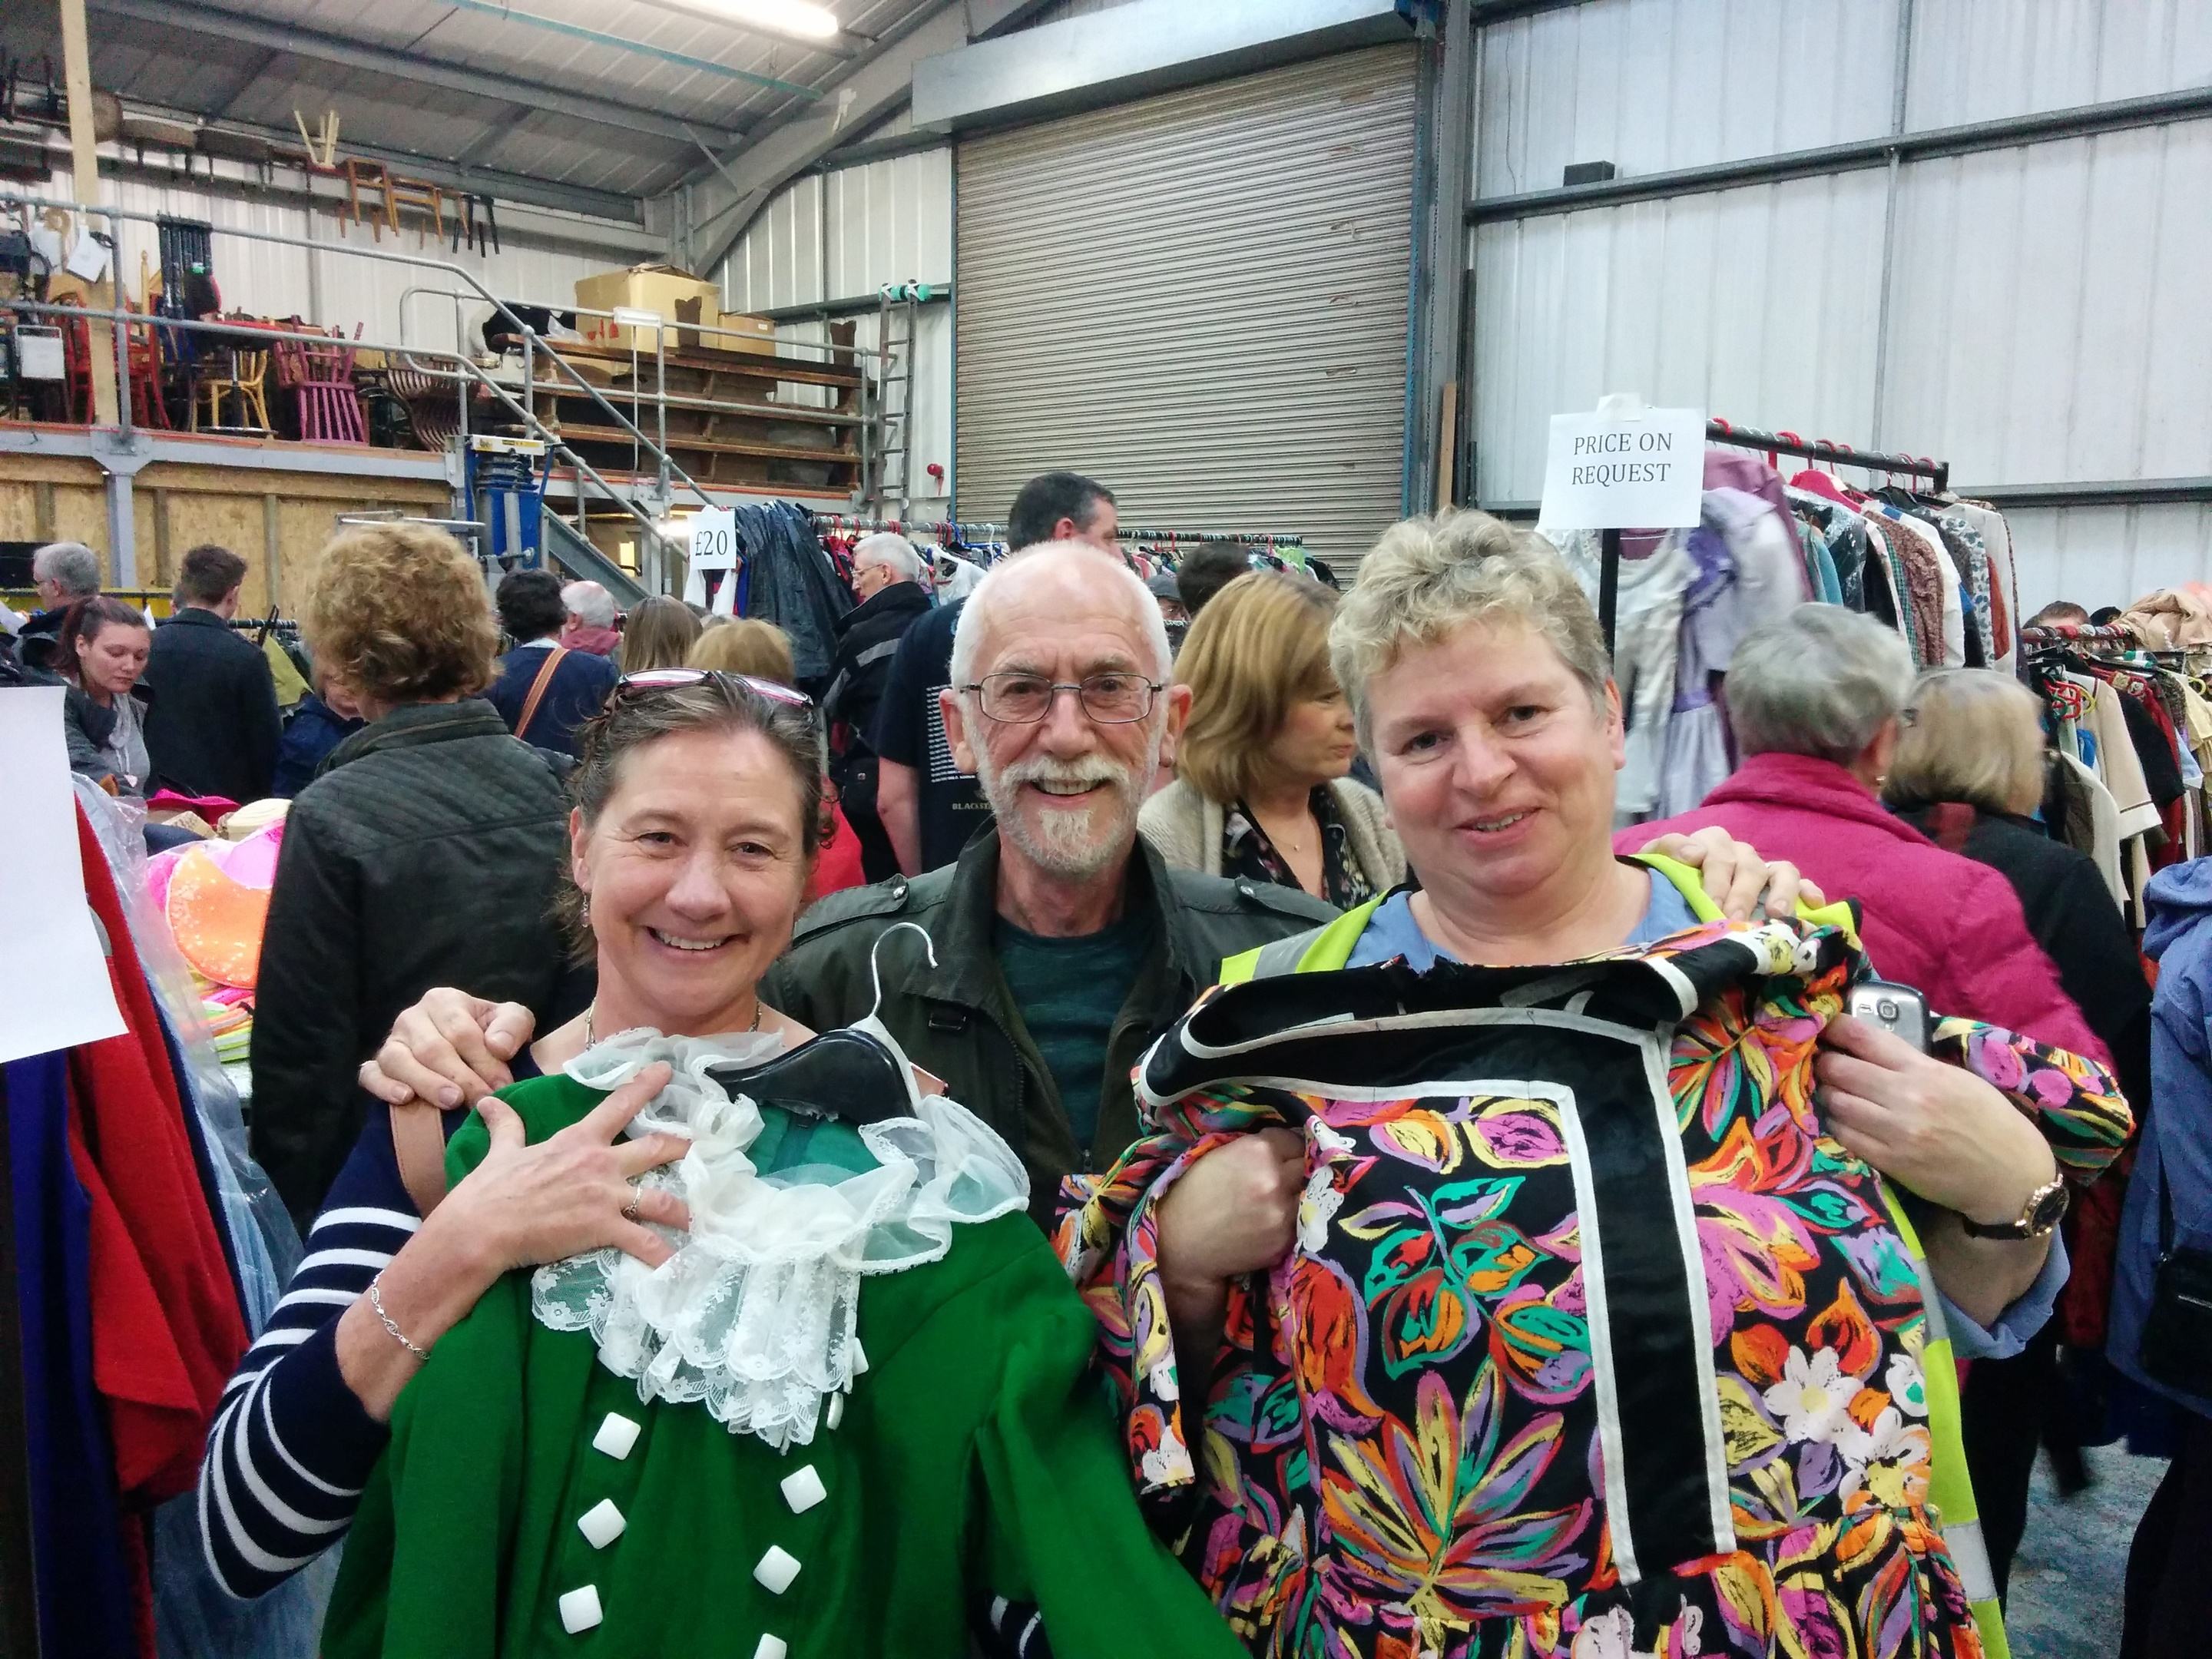 Perth Drama Club was well-represented at the sale. Christine Aston, George Hutchison and Susan Corbett (with Widow Twankey's costume) were among the bargain hunters.